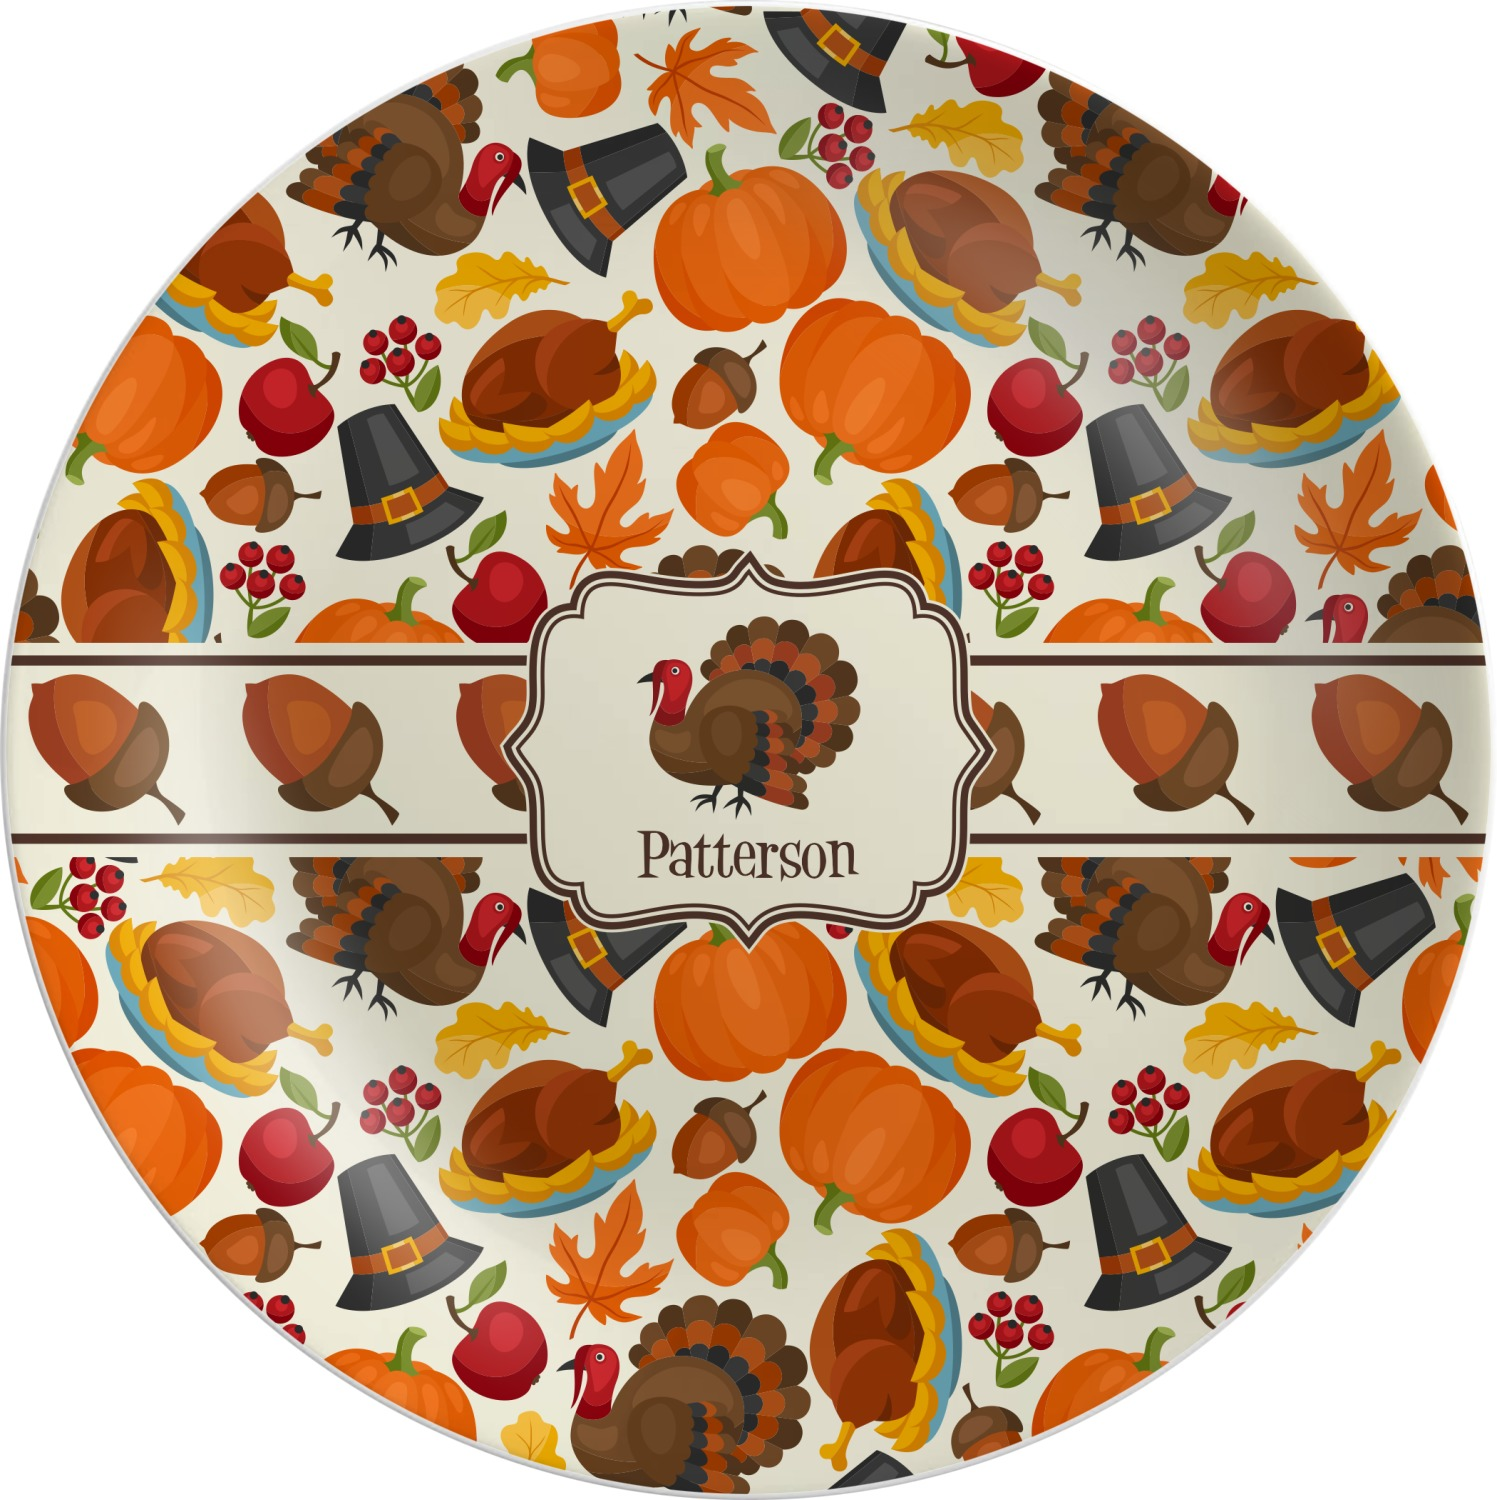 Traditional Thanksgiving Melamine Plate (Personalized)  sc 1 st  YouCustomizeIt & Traditional Thanksgiving Melamine Plate (Personalized) - YouCustomizeIt